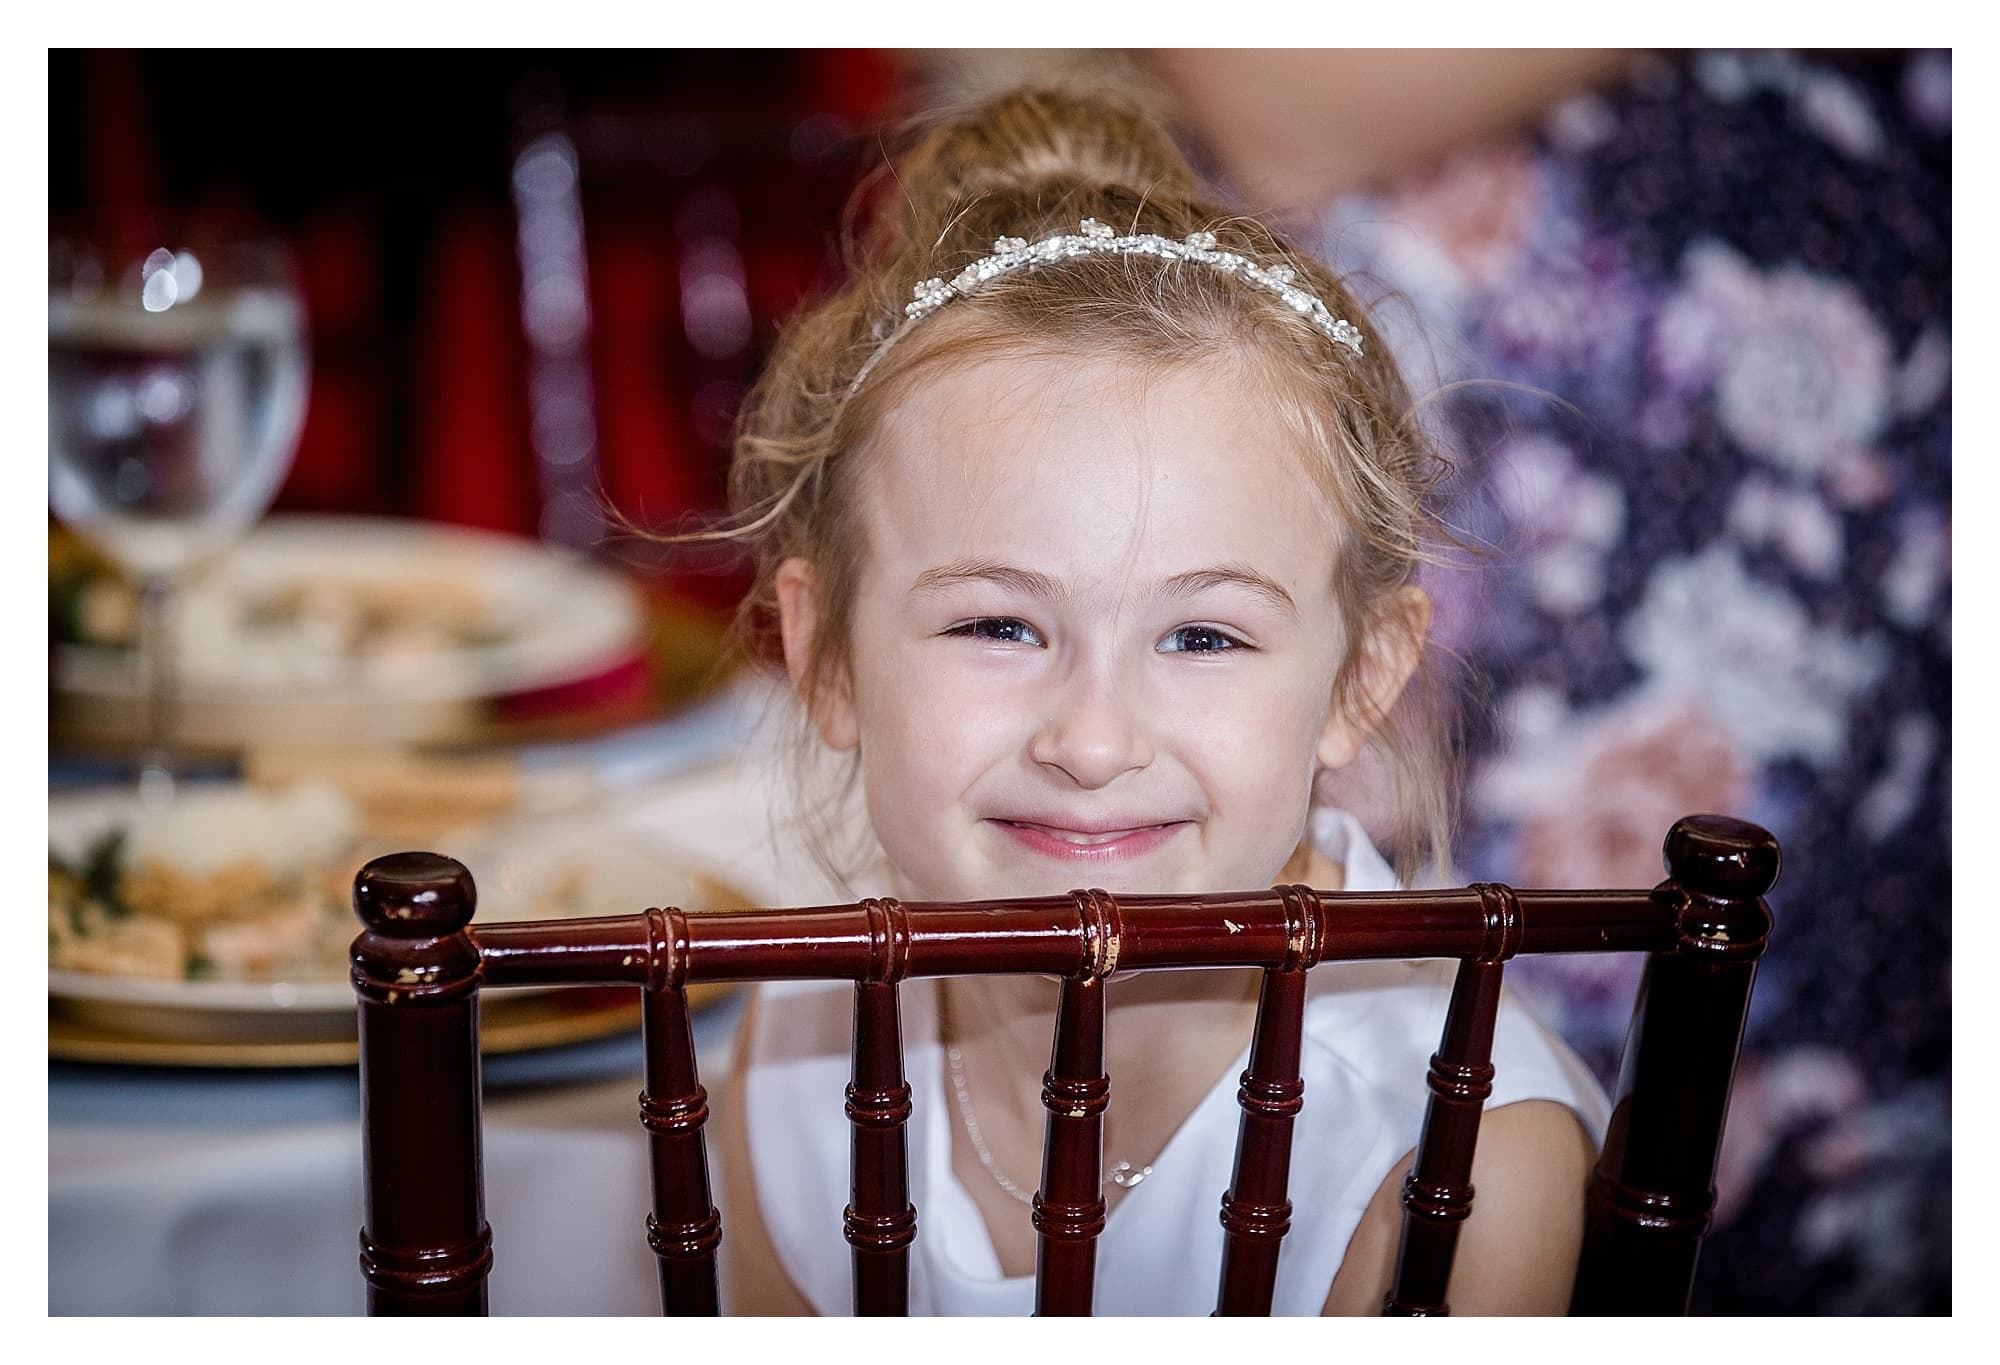 Smiling girl at wedding reception, photography by Kathy Beaver